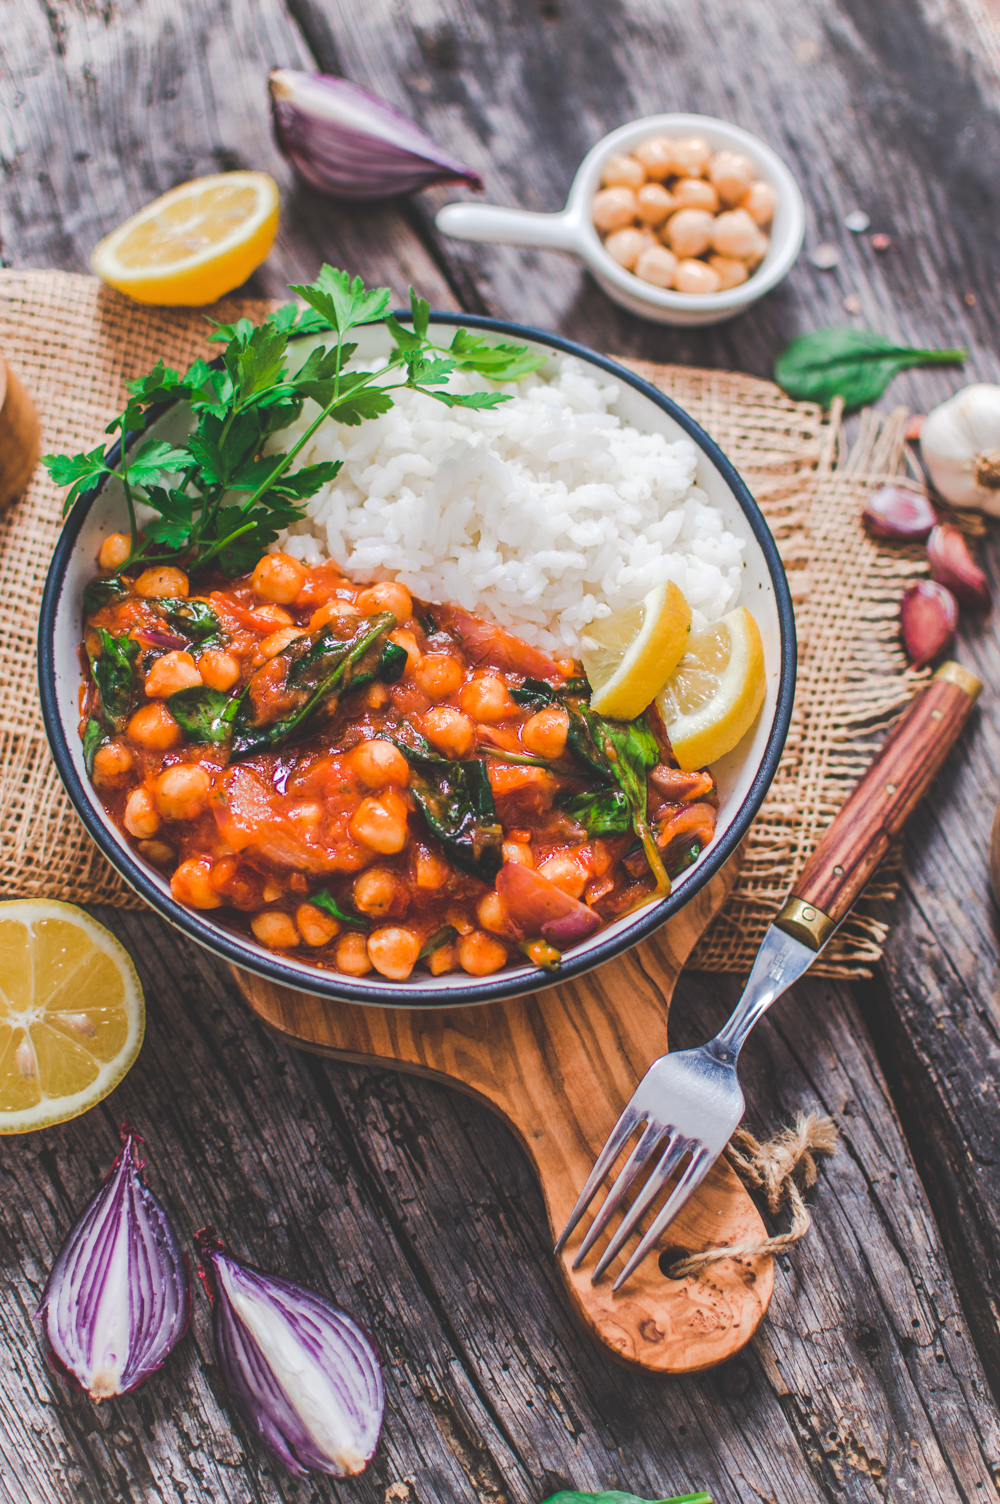 Vegan chickpea Stew Served on a Dish with Ingredients around